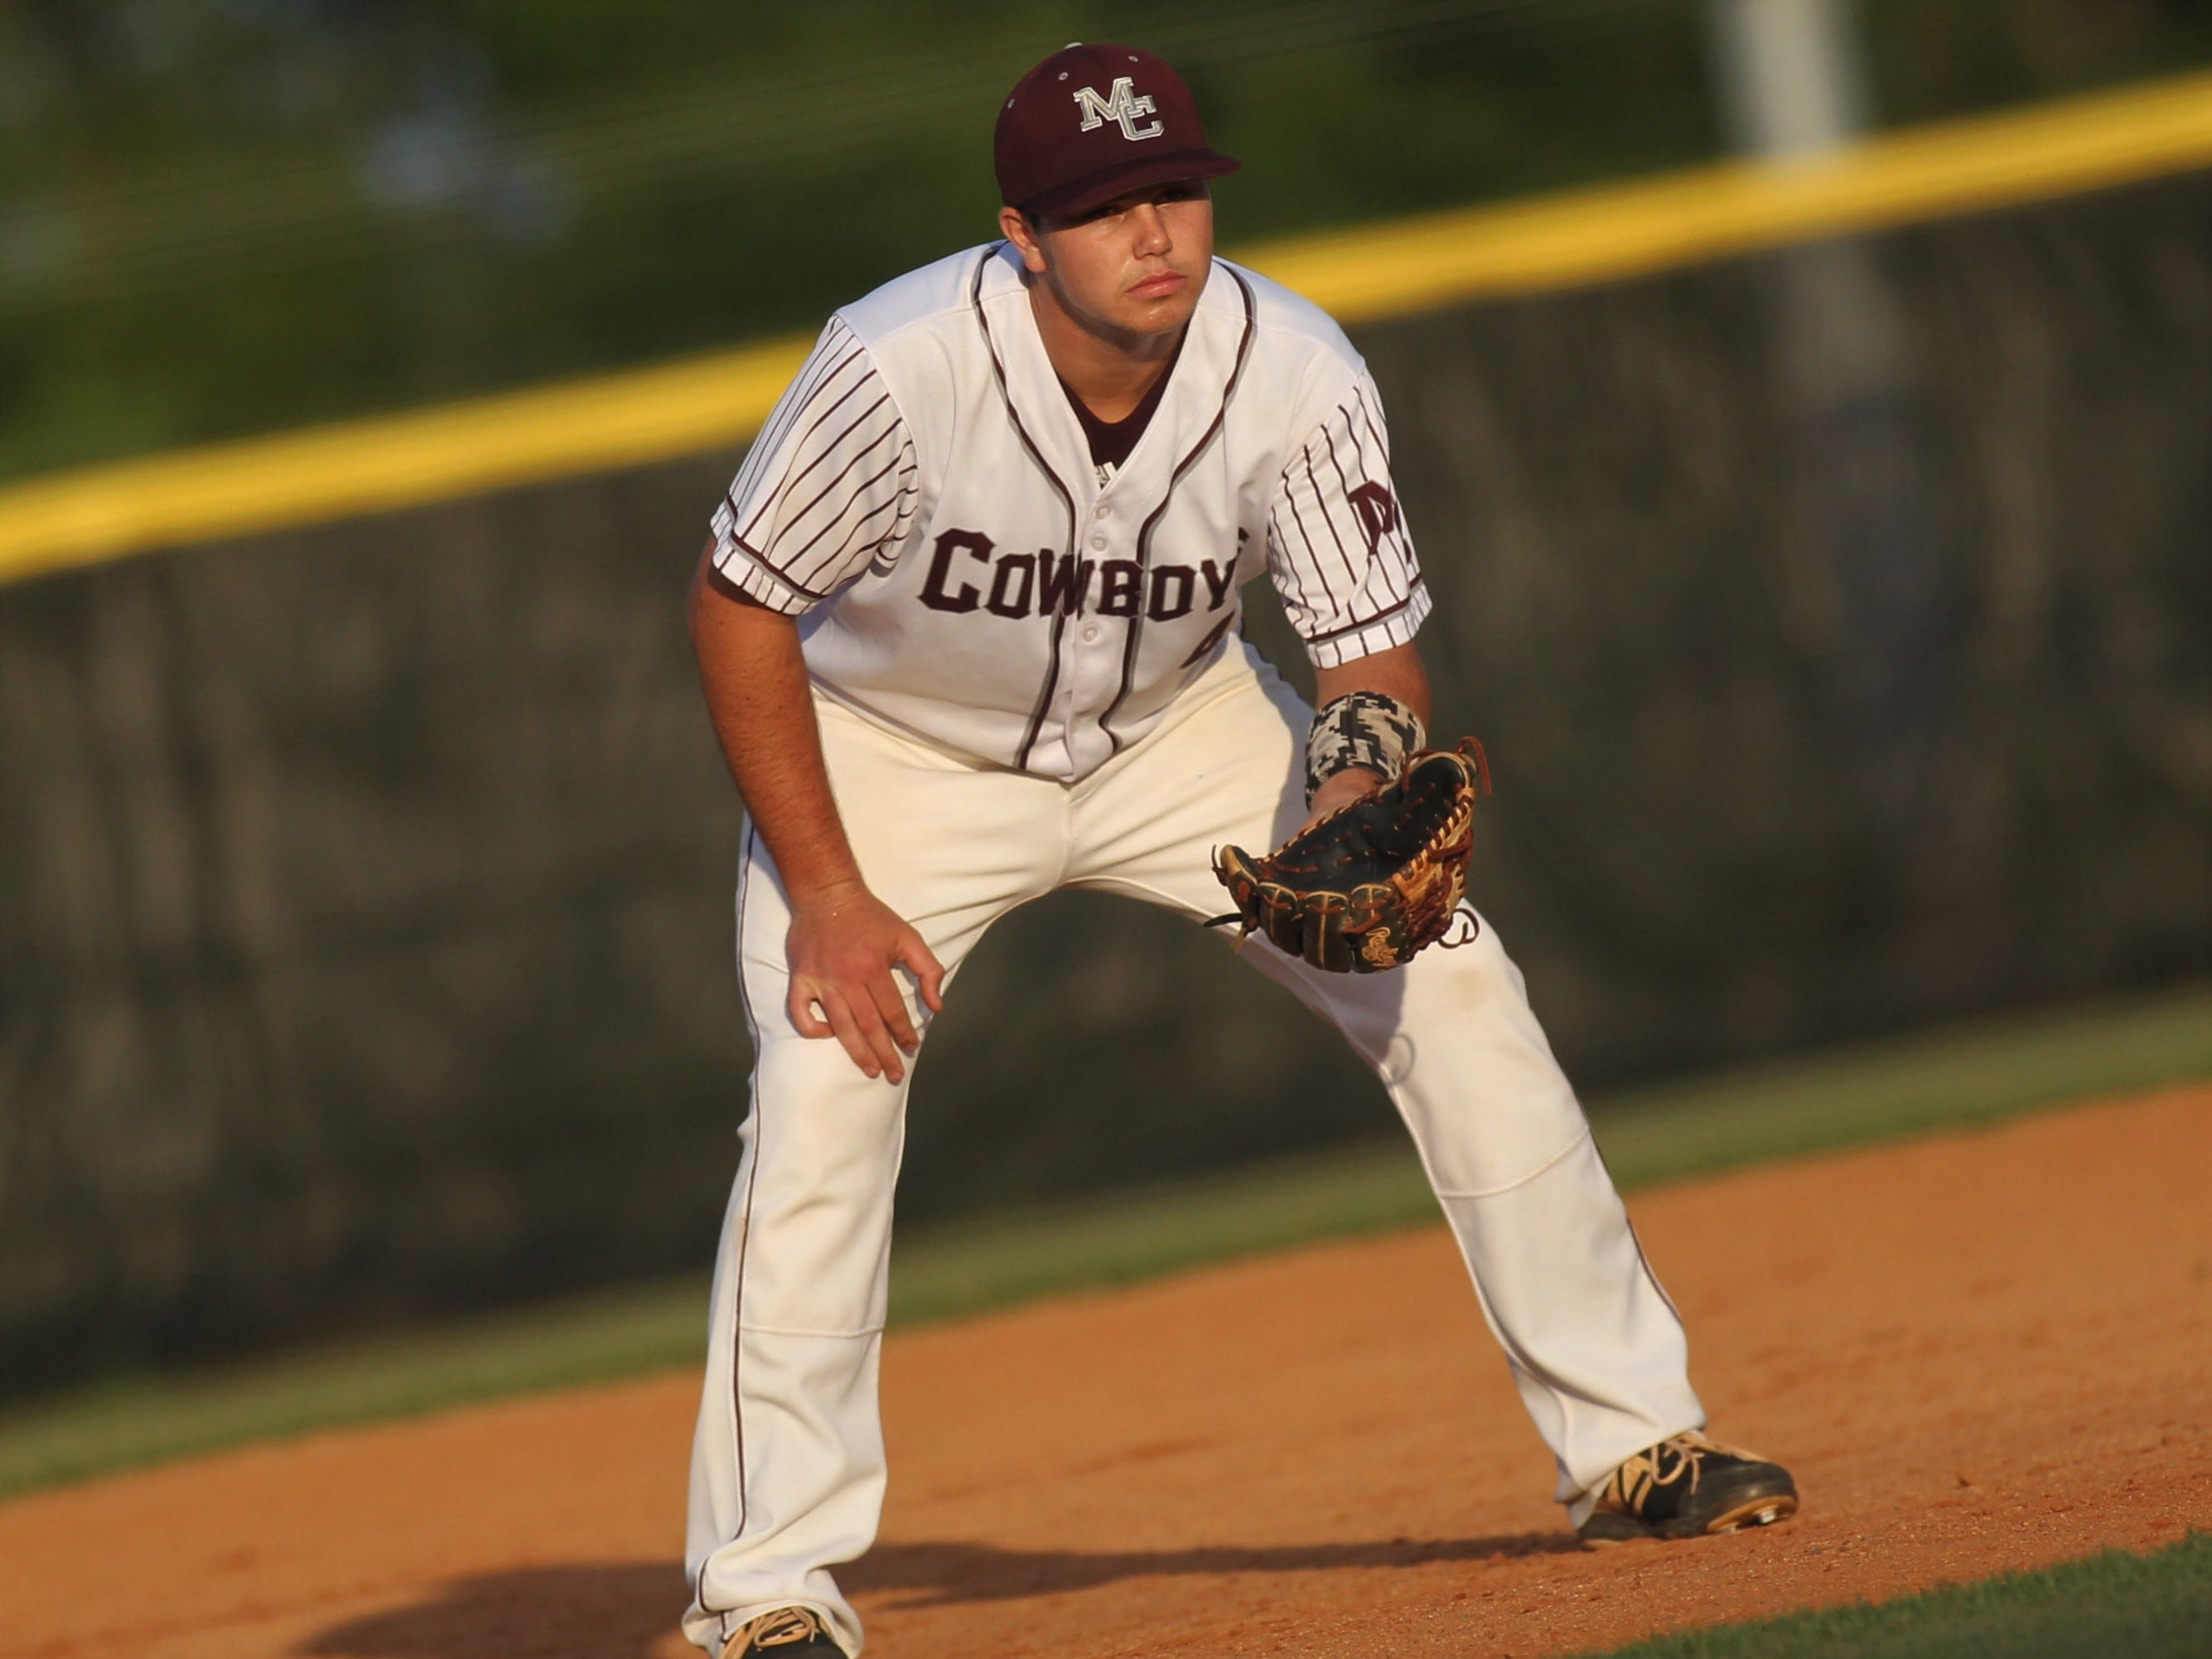 Madison County third baseman Dawson Rutherford prepares defensively as the Cowboys beat Union County 1-0 during a Region 2-1A semifinal on May 14, 2019.